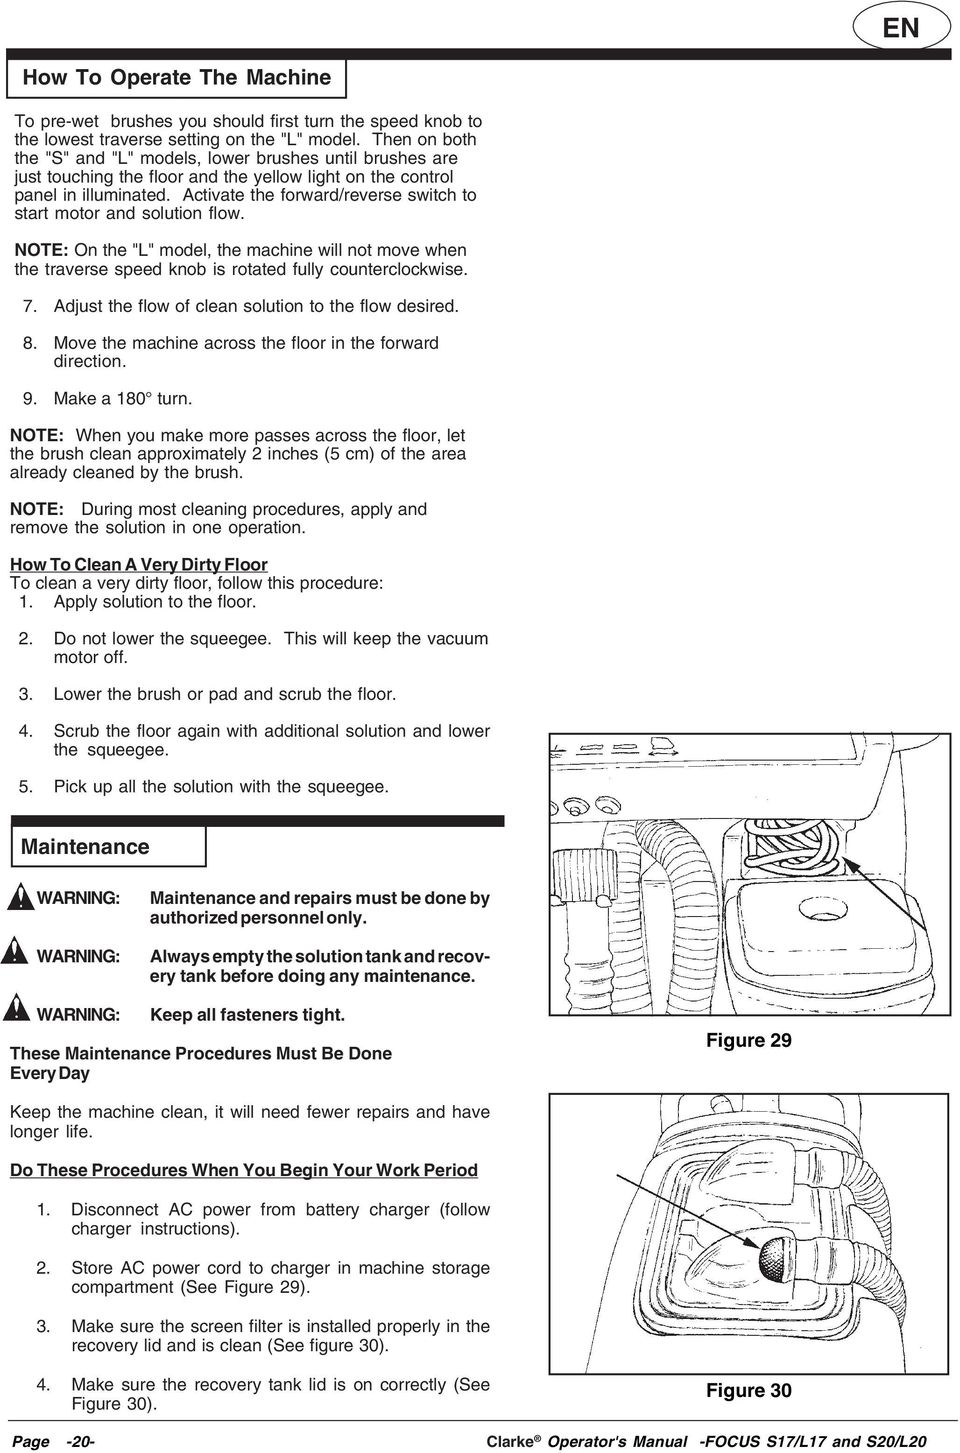 "Activate the forward/reverse switch to start motor and solution flow. NOTE: On the ""L"" model, the machine will not move when the traverse speed knob is rotated fully counterclockwise. 7."